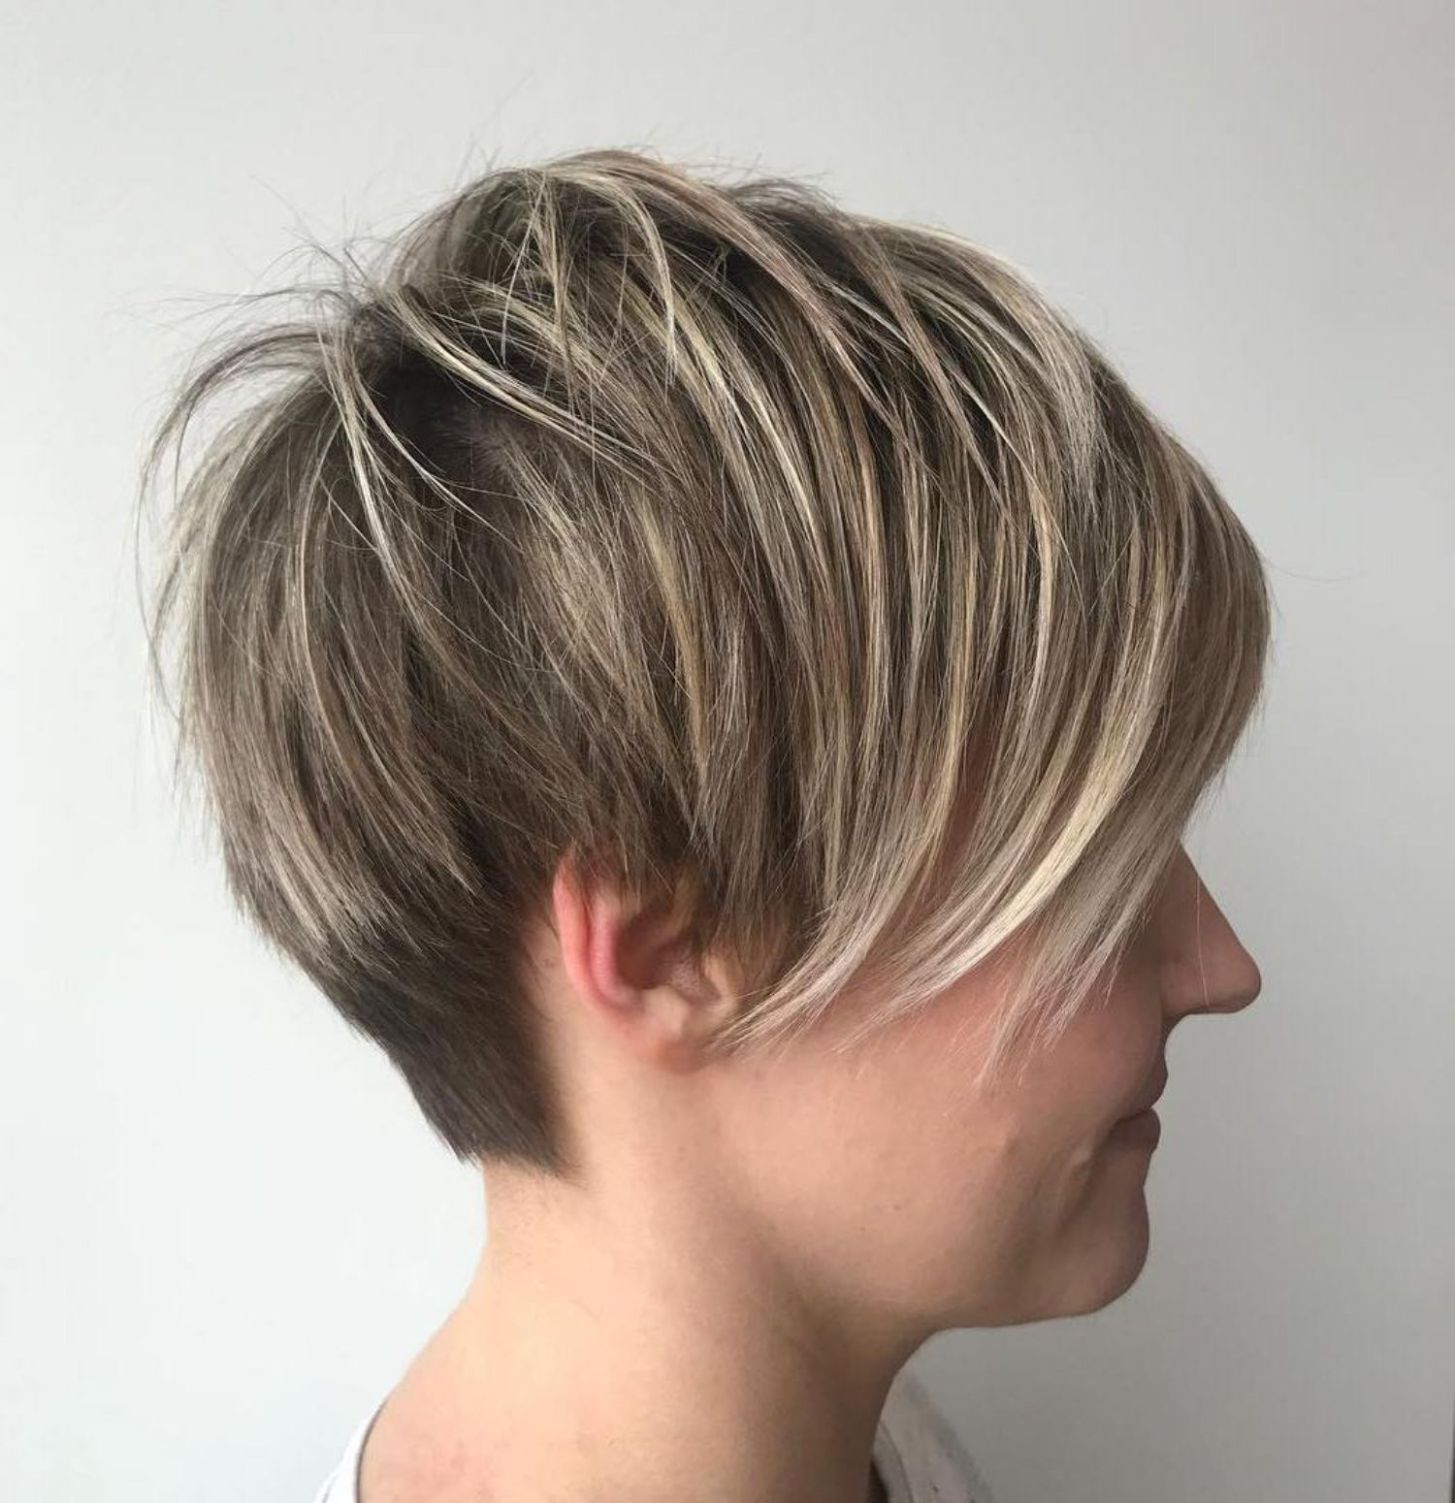 Platinum hair color boy pixie haircuts with bangs   terrific tapers  short hairstyles